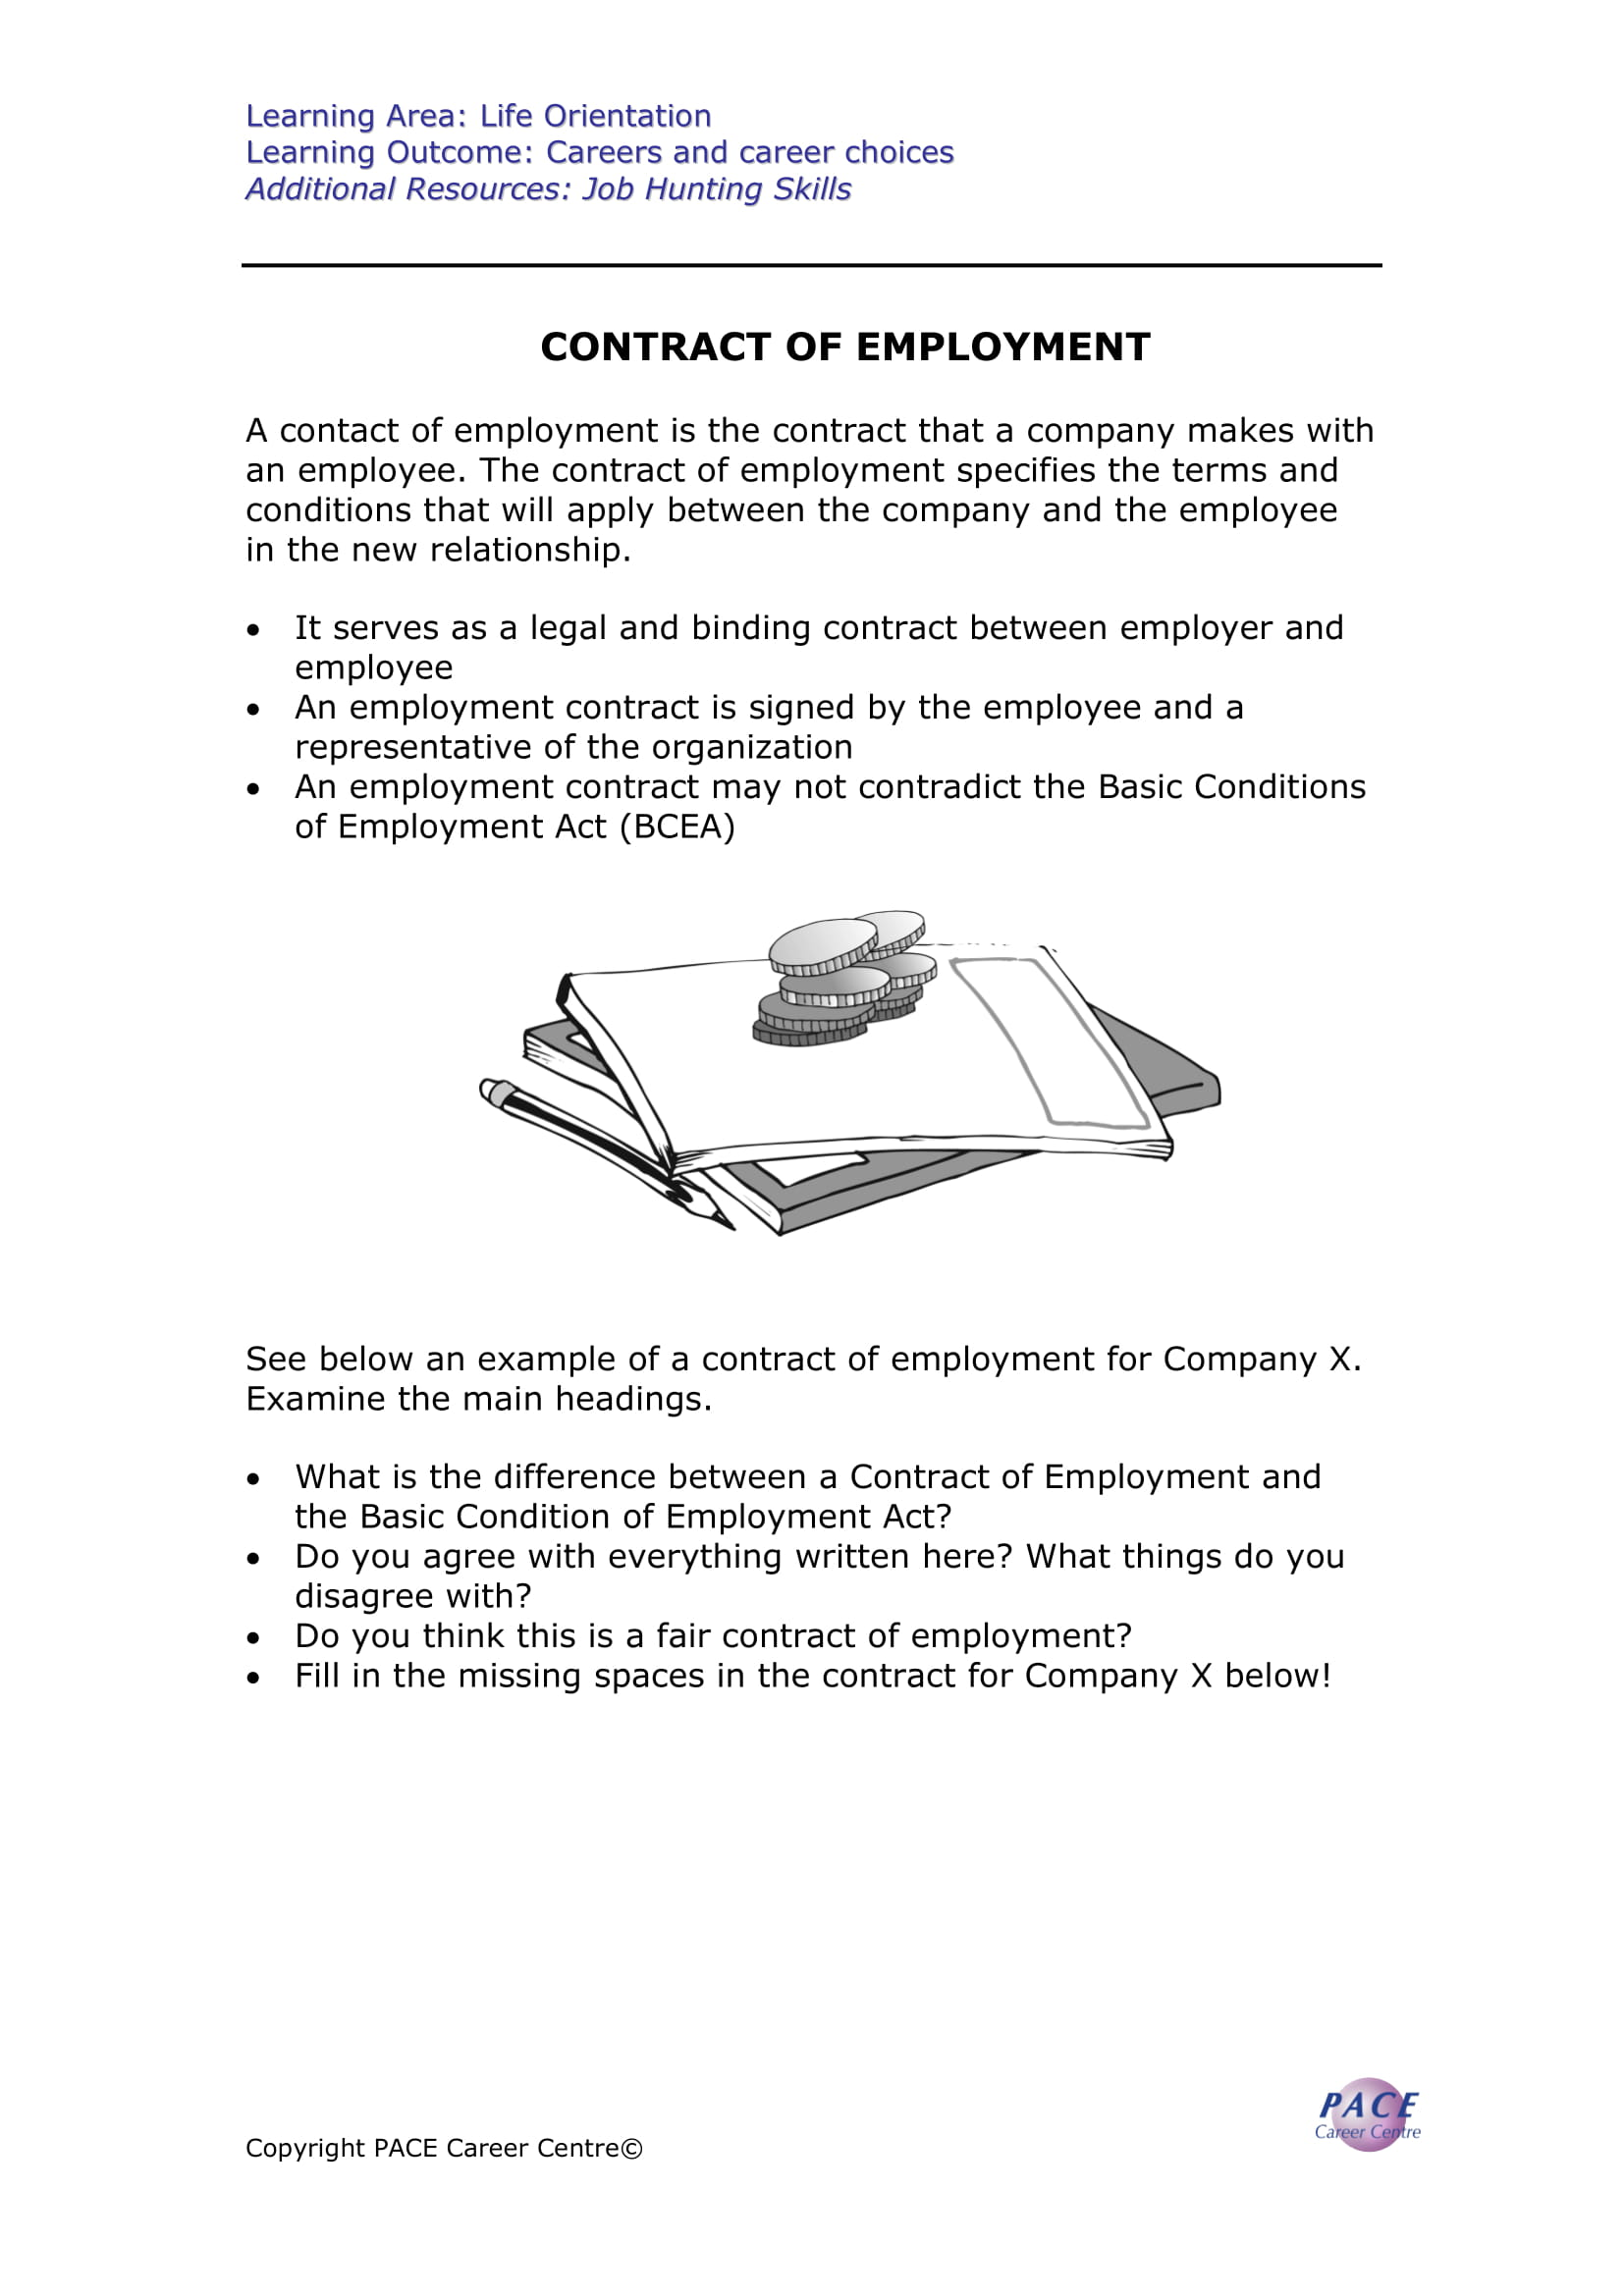 contract of employment template and guide